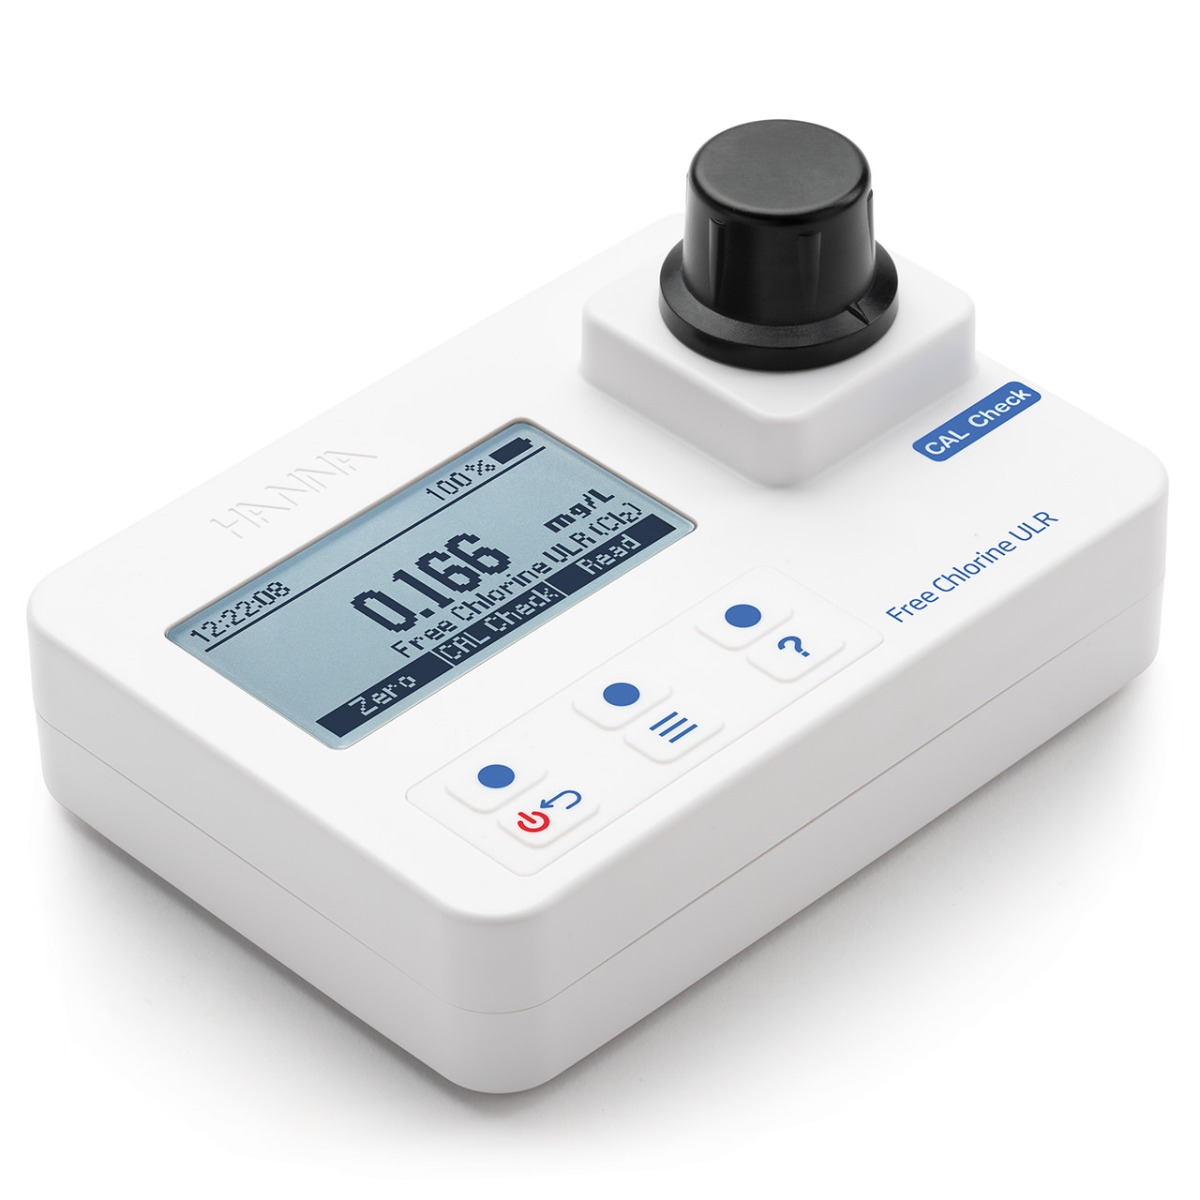 Free Chlorine Ultra Low-Range Portable Photometer with CAL Check-HI97762